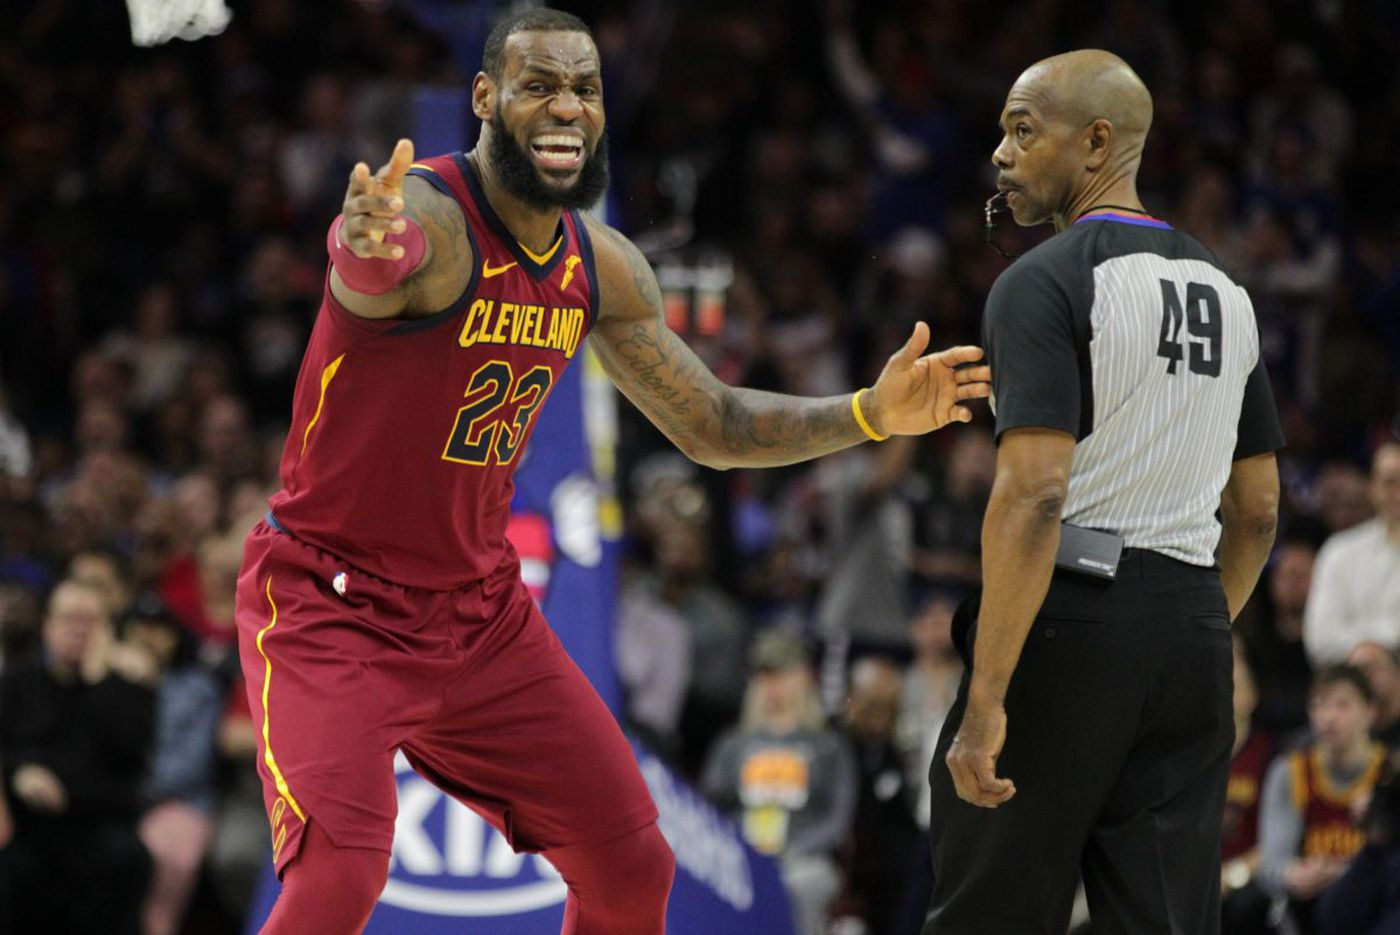 LeBron James reacts to Cavaliers' failed comeback against the Sixers